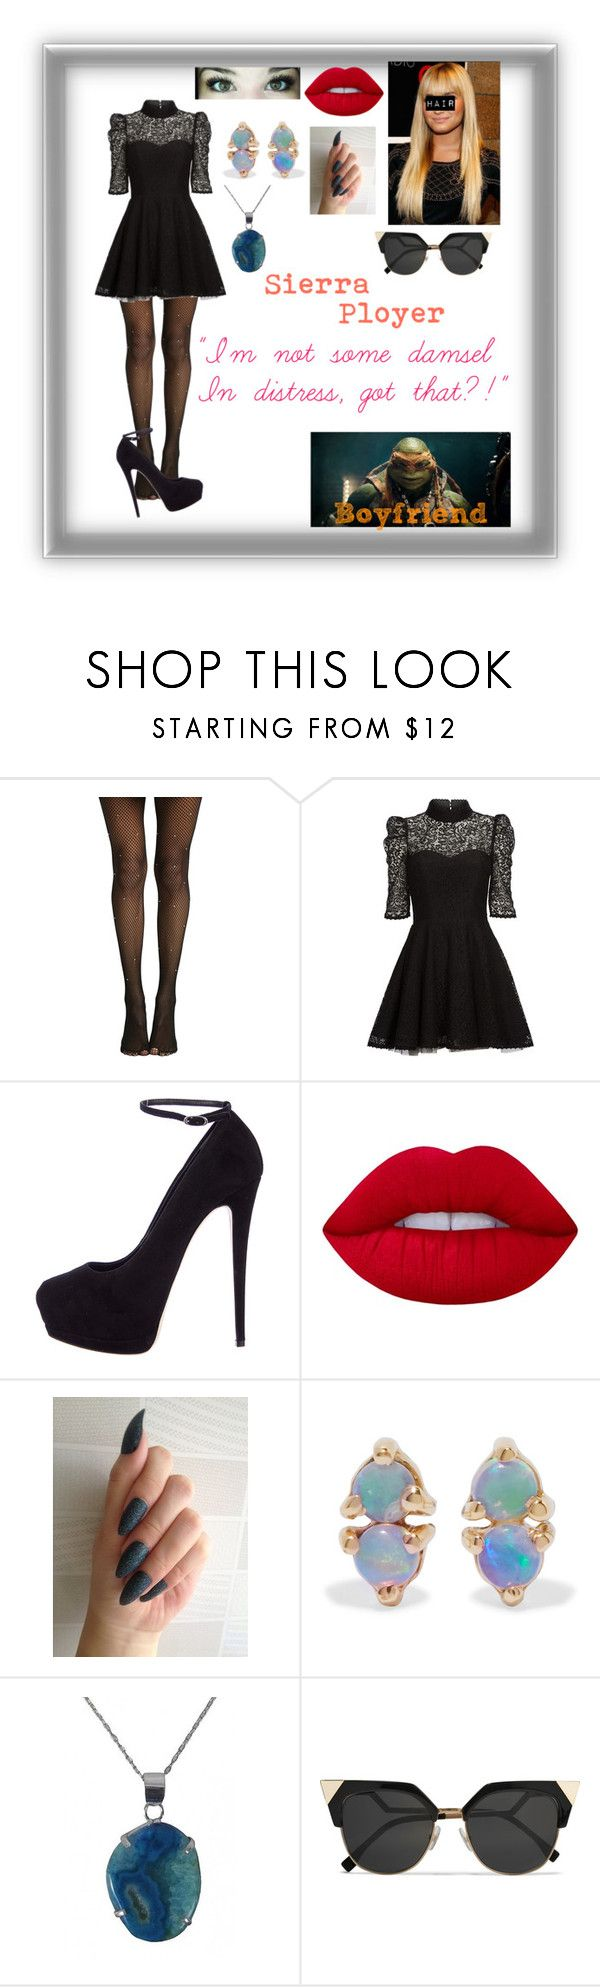 """""""*TMNT 2014: Sierra Ployer*"""" by blissfull-darkness ❤ liked on Polyvore featuring Hot Topic, Mairi Mcdonald, Giuseppe Zanotti, Lime Crime, WWAKE and Fendi"""